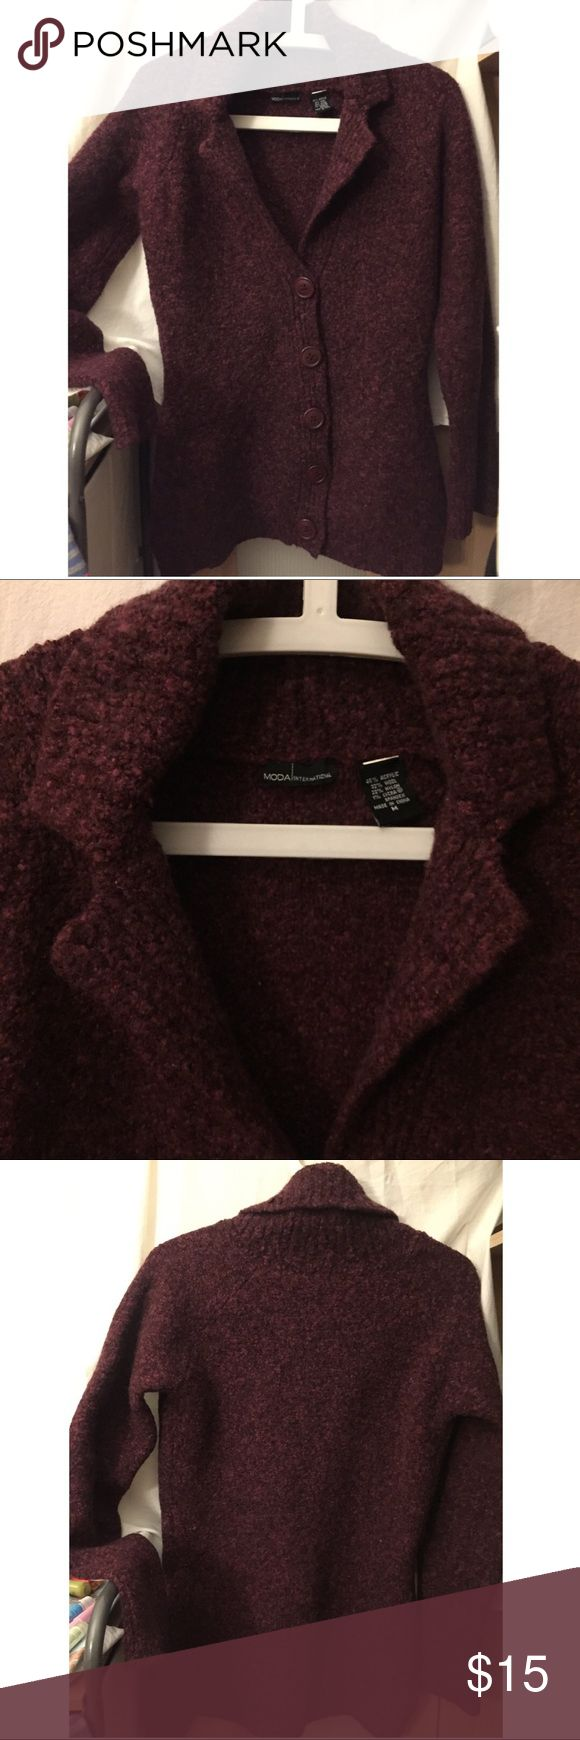 "SALE! Victoria Secret-Moda cardigan sweater Boucle cardigan sweater from Victoria Secret-Moda International- very soft and very warm; 27 1/2""L Victoria's Secret Sweaters Cardigans"